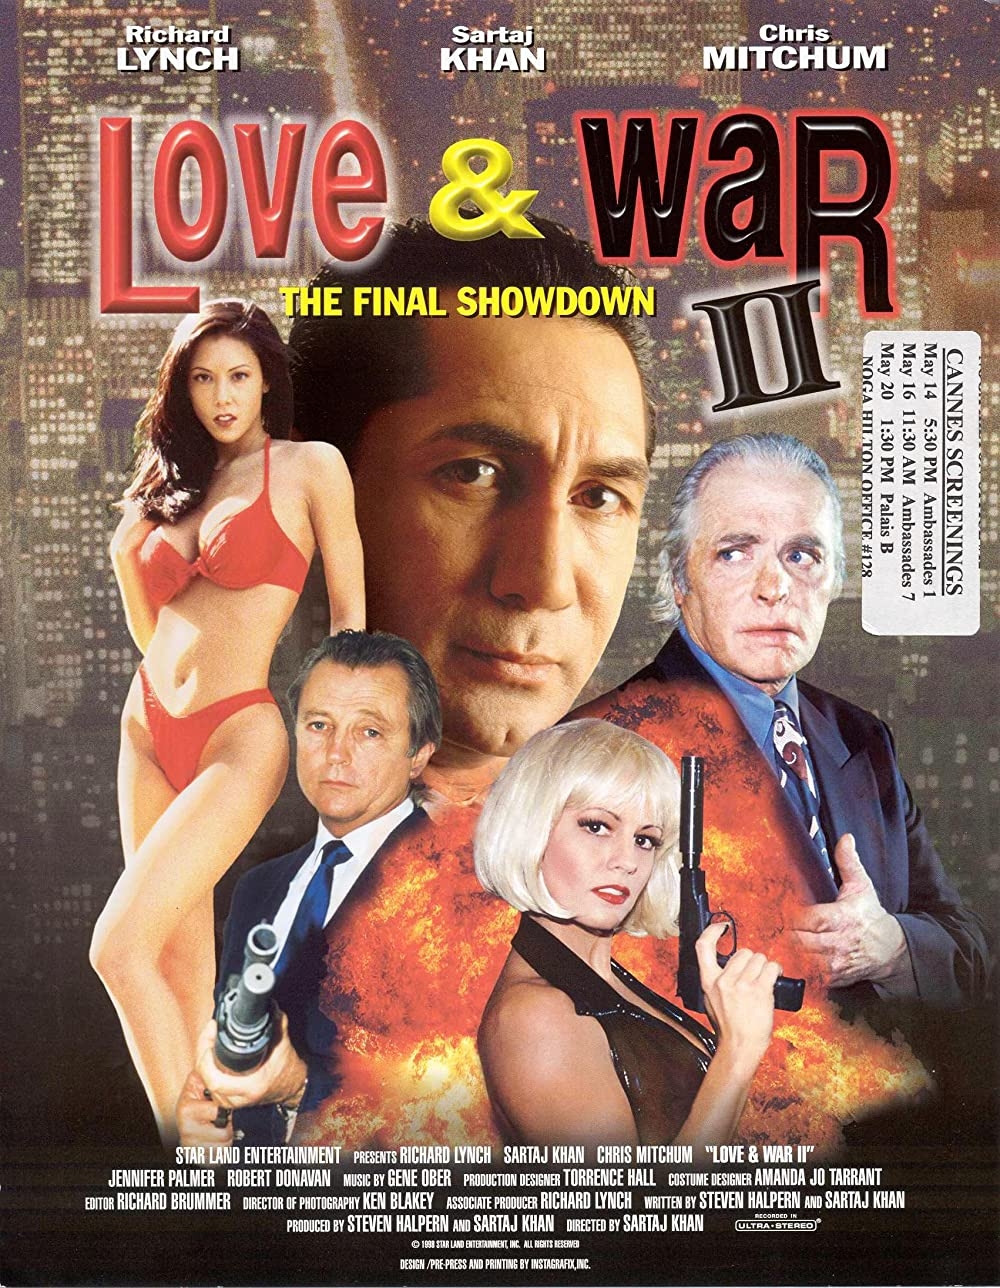 18+ Love and War II (1998) Hindi Dual Audio 720p UNRATED DVDRip 1.2GB Download